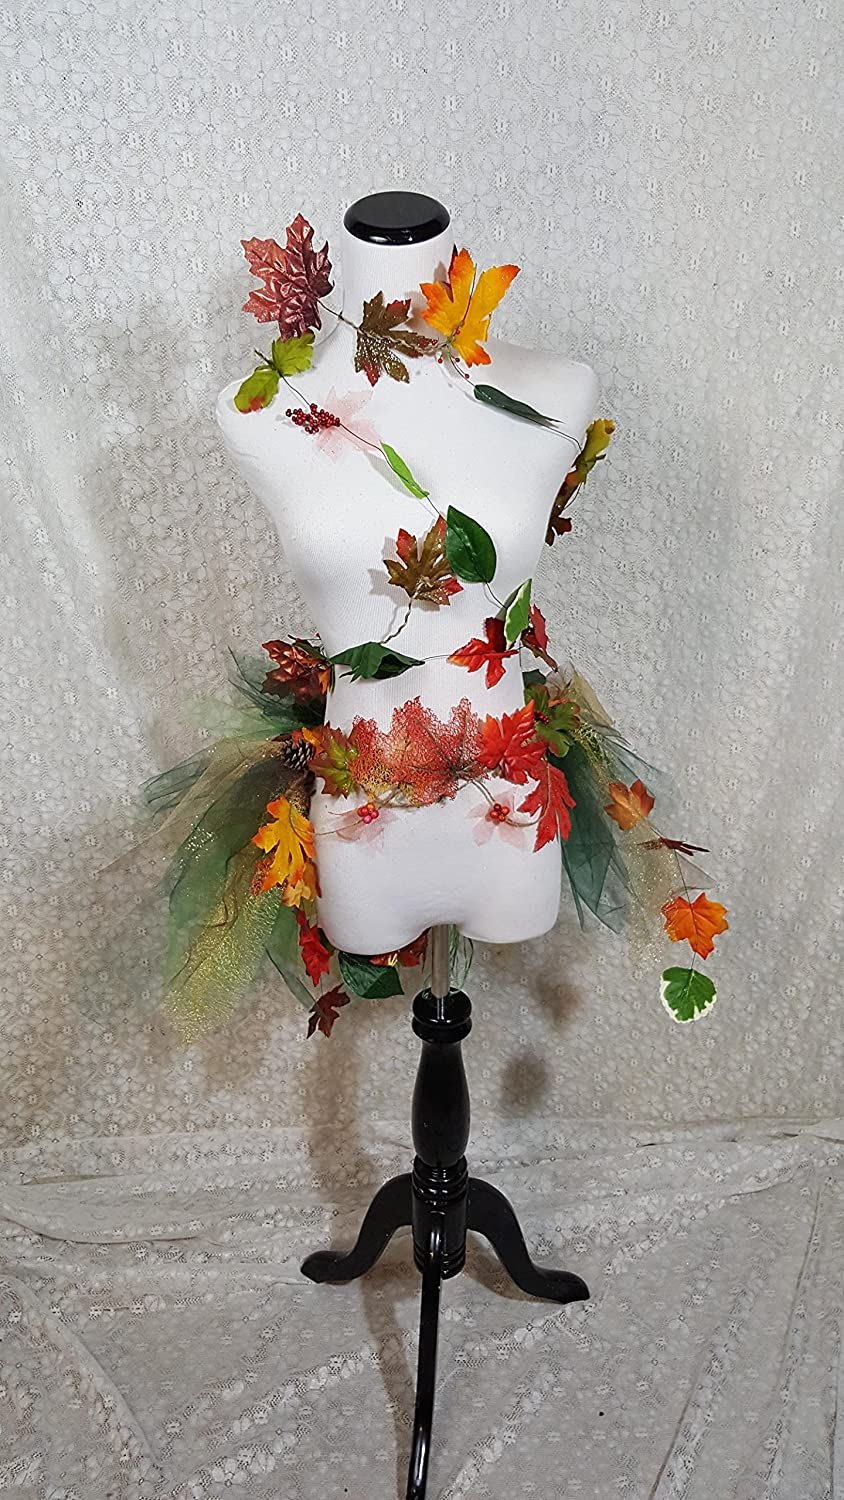 361a0bdd0c2 Amazon.com: Adult Mother Nature Tutu Bustle and Body Vine: Handmade